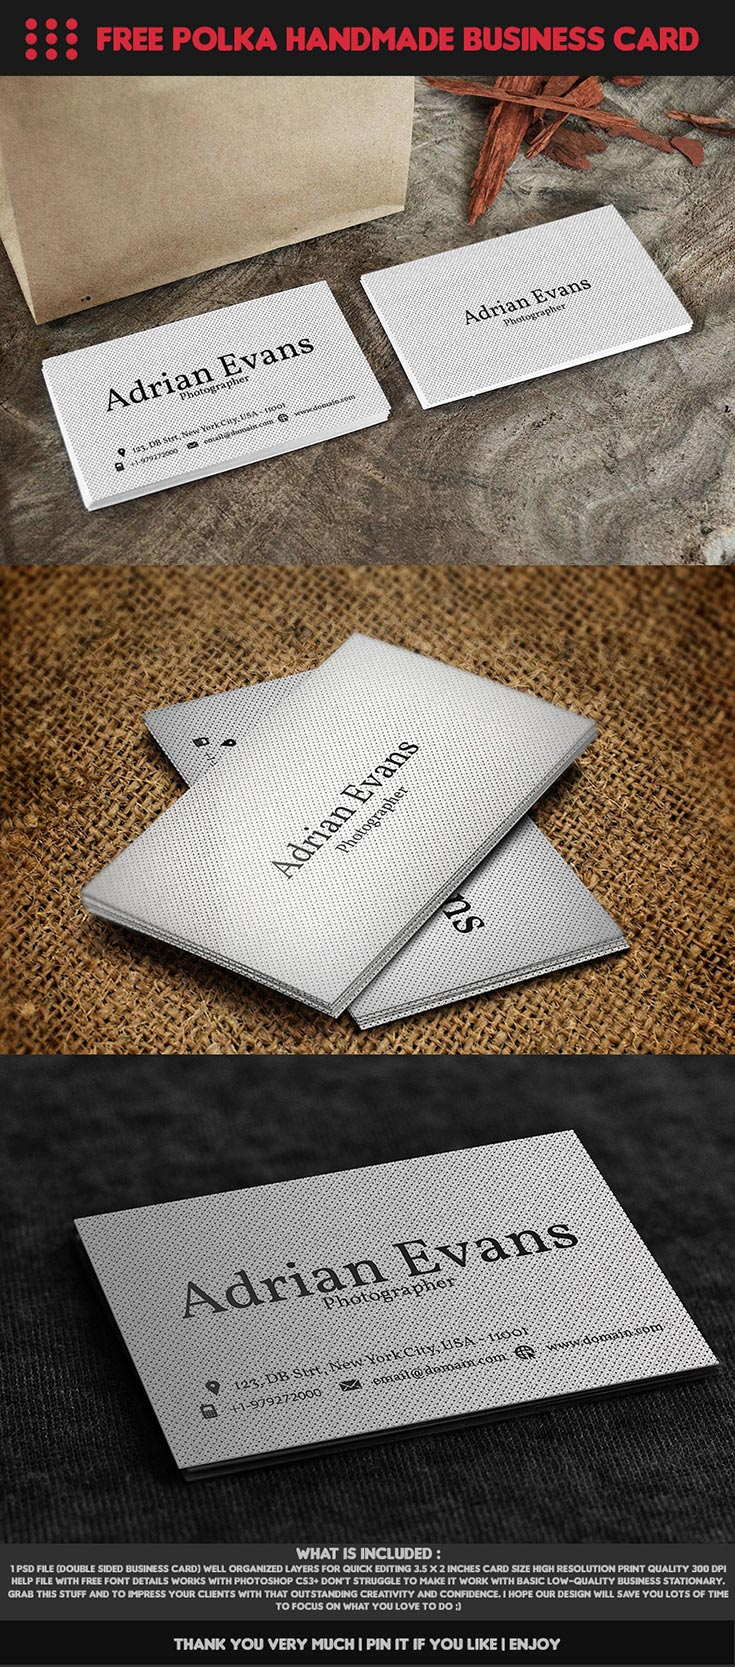 Free Polka Handmade Business Card